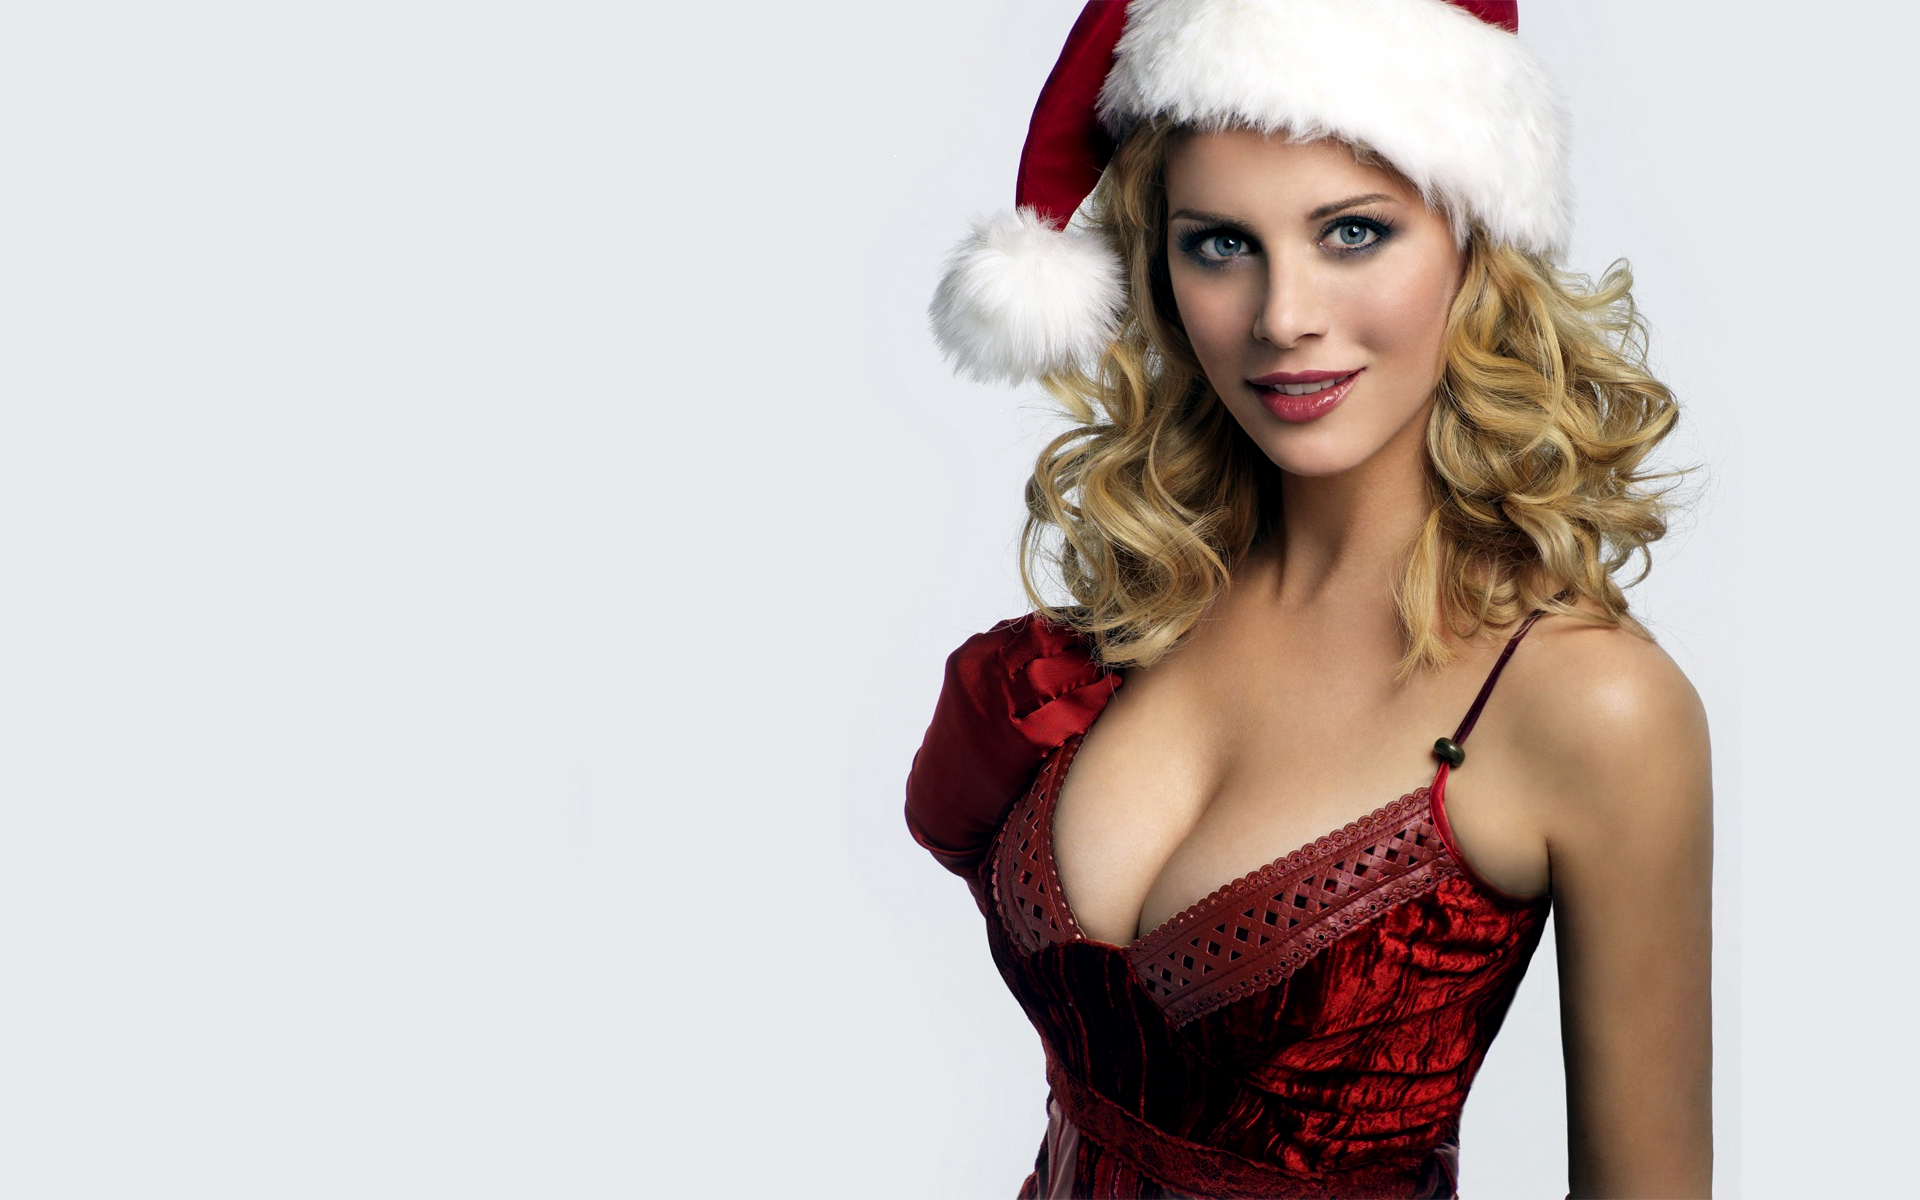 blondes Women Christmas outfits HD Wallpaper